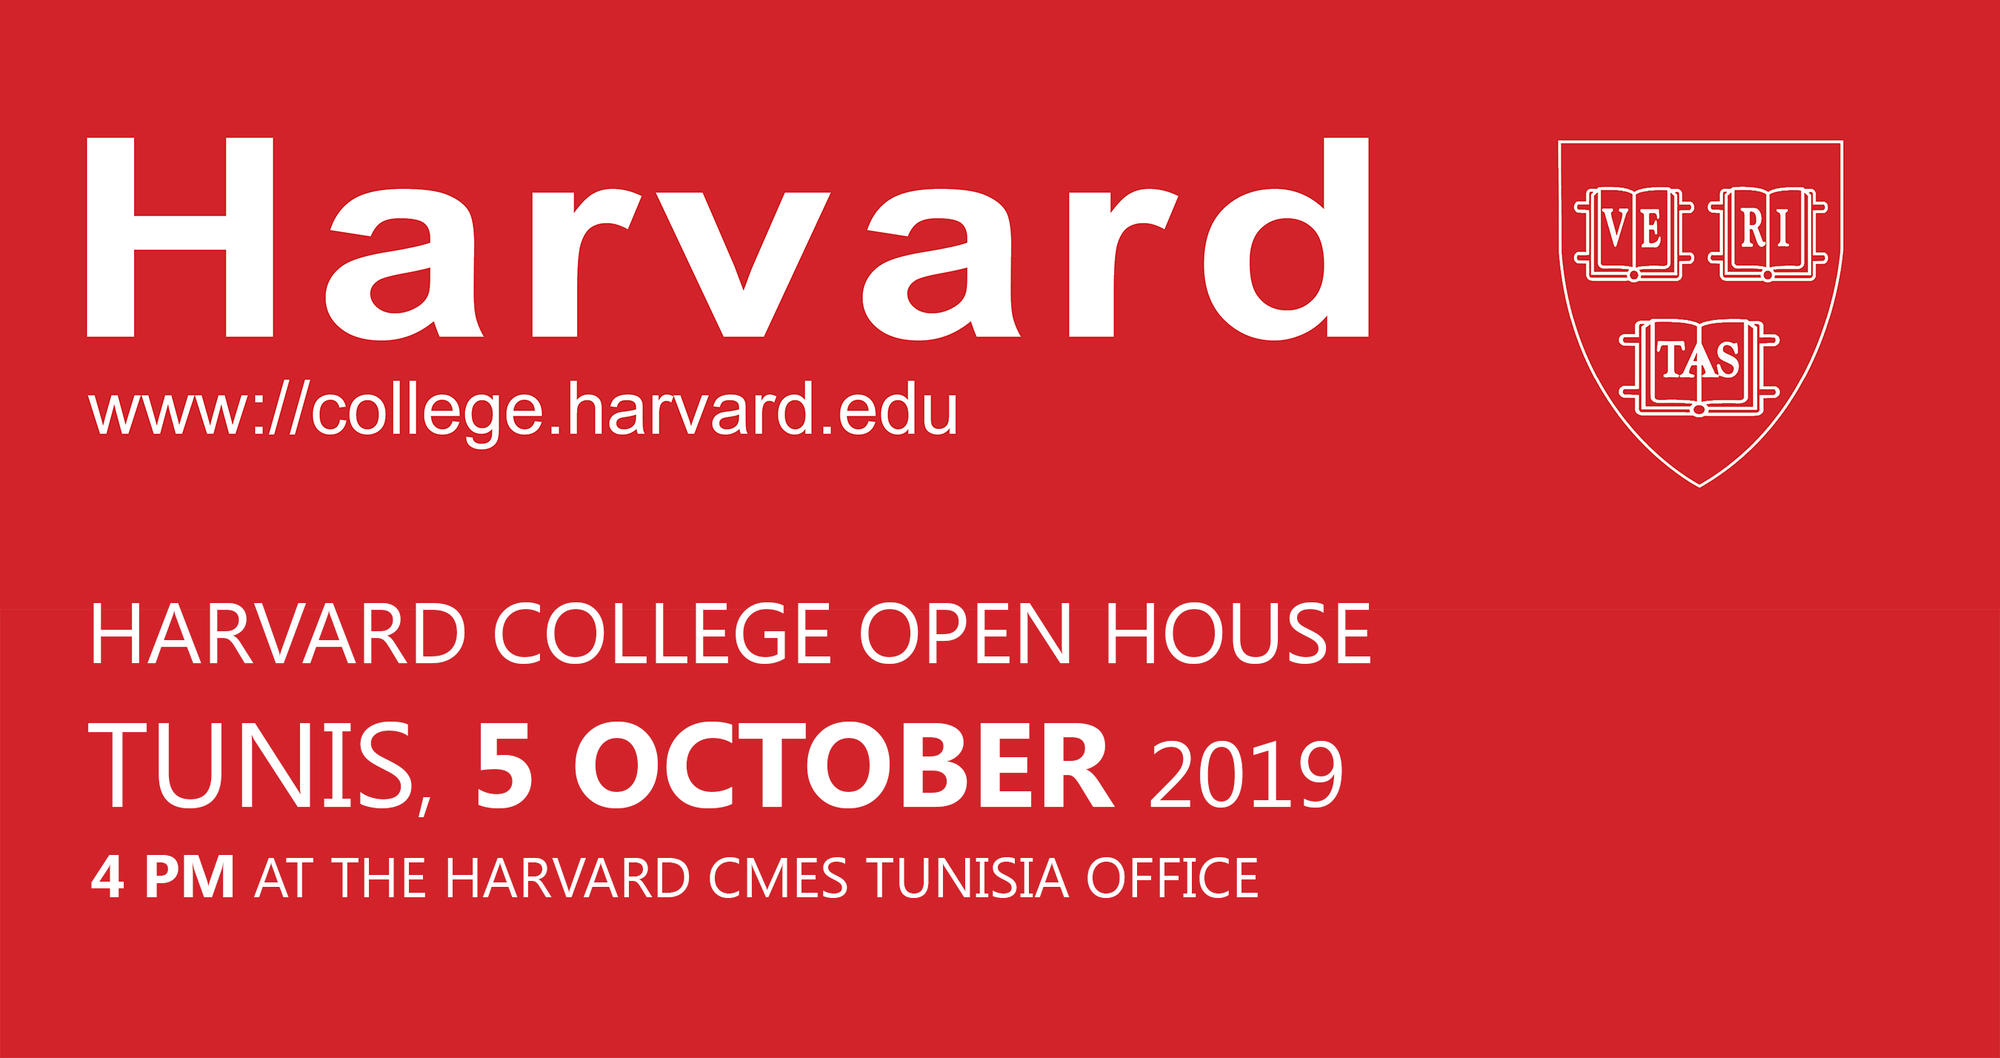 Harvard College Open House Tunis-oct-5-2019-cover